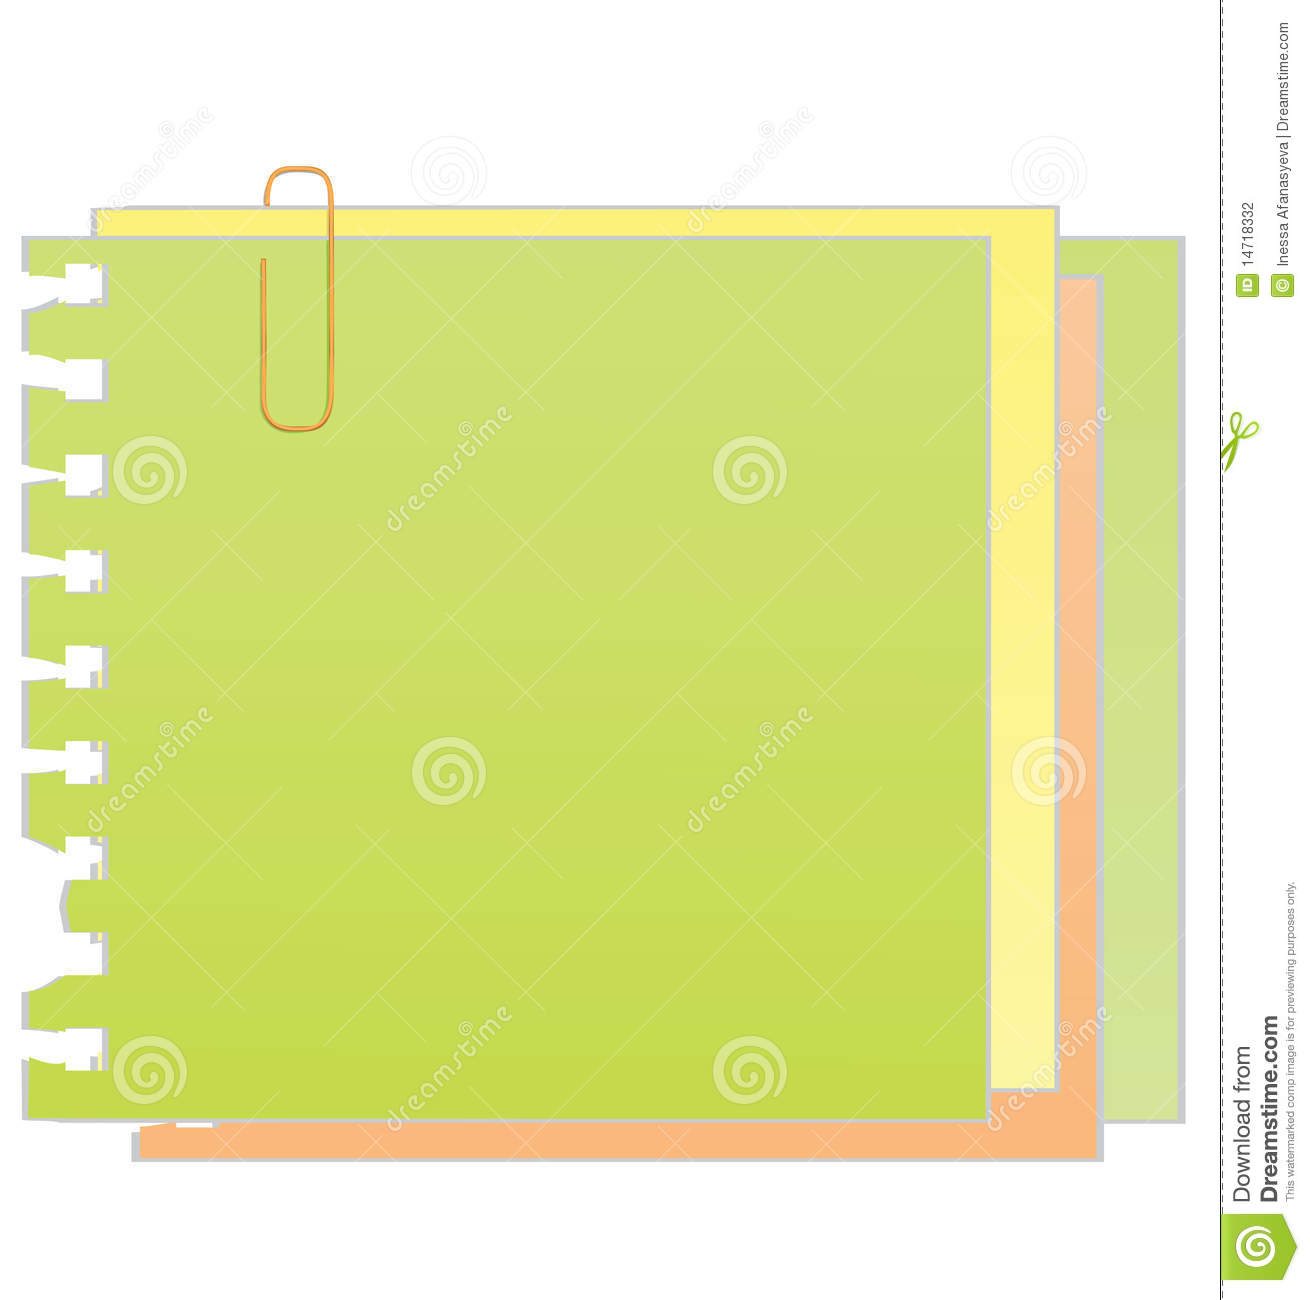 Free vector graphic sticky note note info paper free image on - Vector Sticky Note With Paper Clip Stock Photography